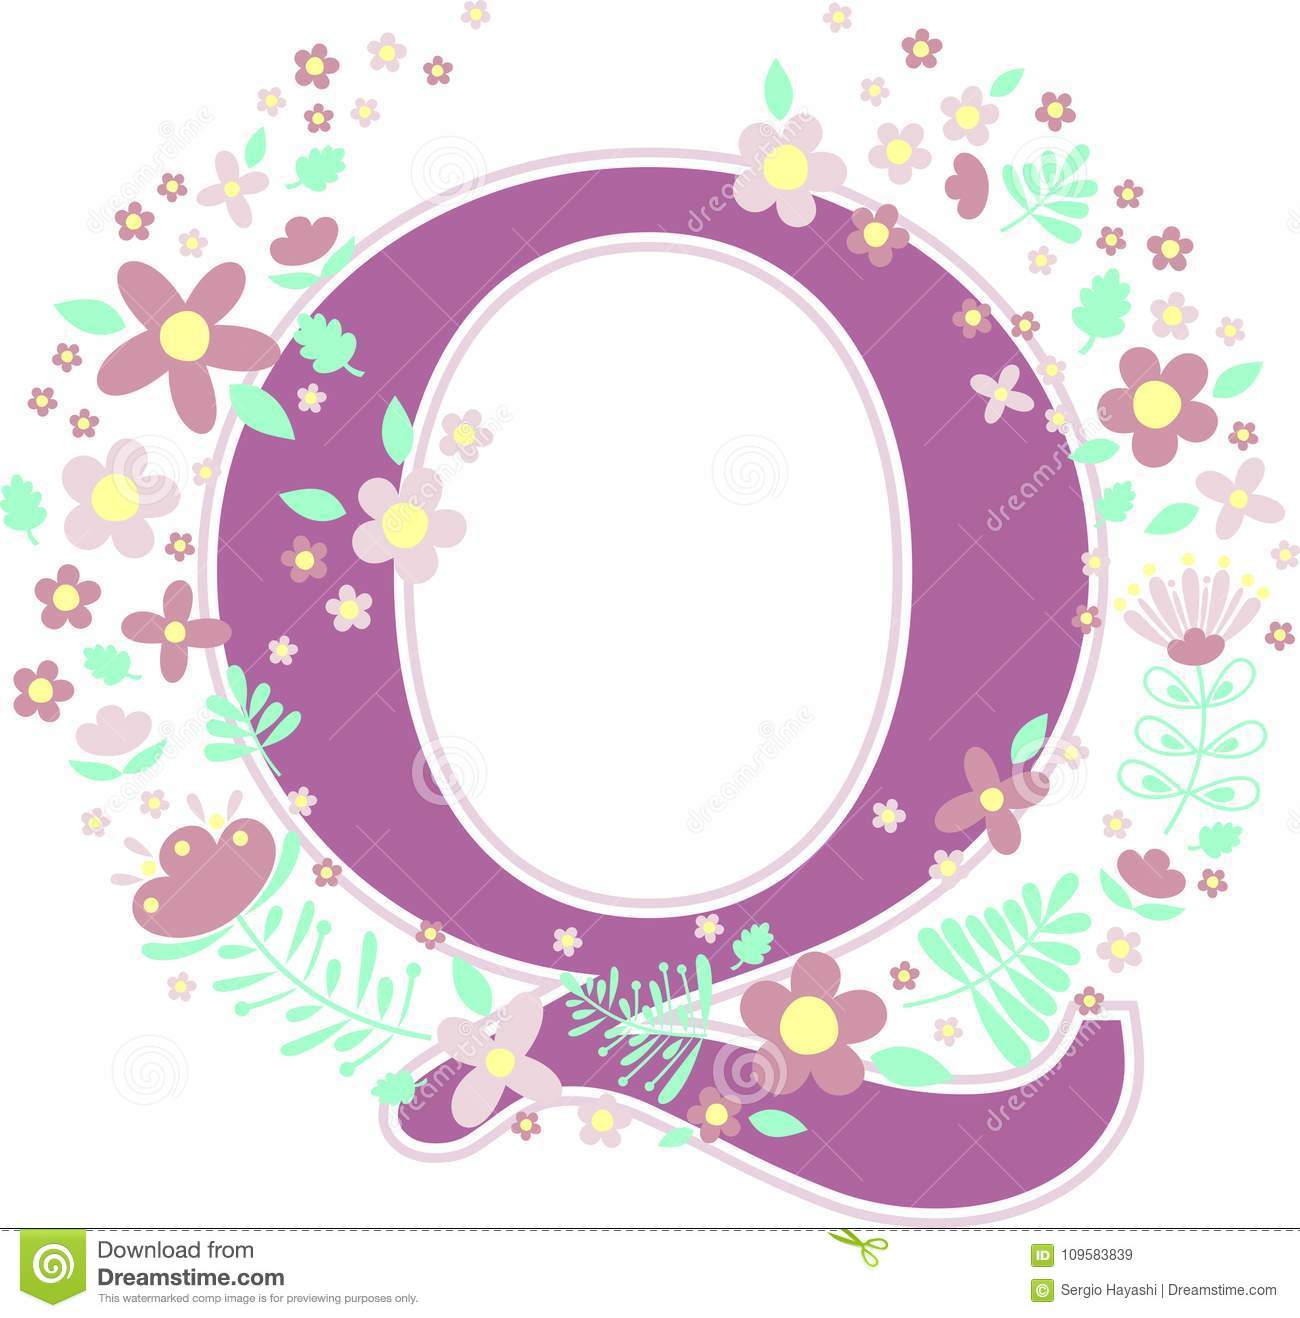 Baby name initial q with flowers stock vector illustration of initial letter q with decorative flowers and design elements isolated on white background can be used for baby name nursery decoration spring themes or junglespirit Image collections